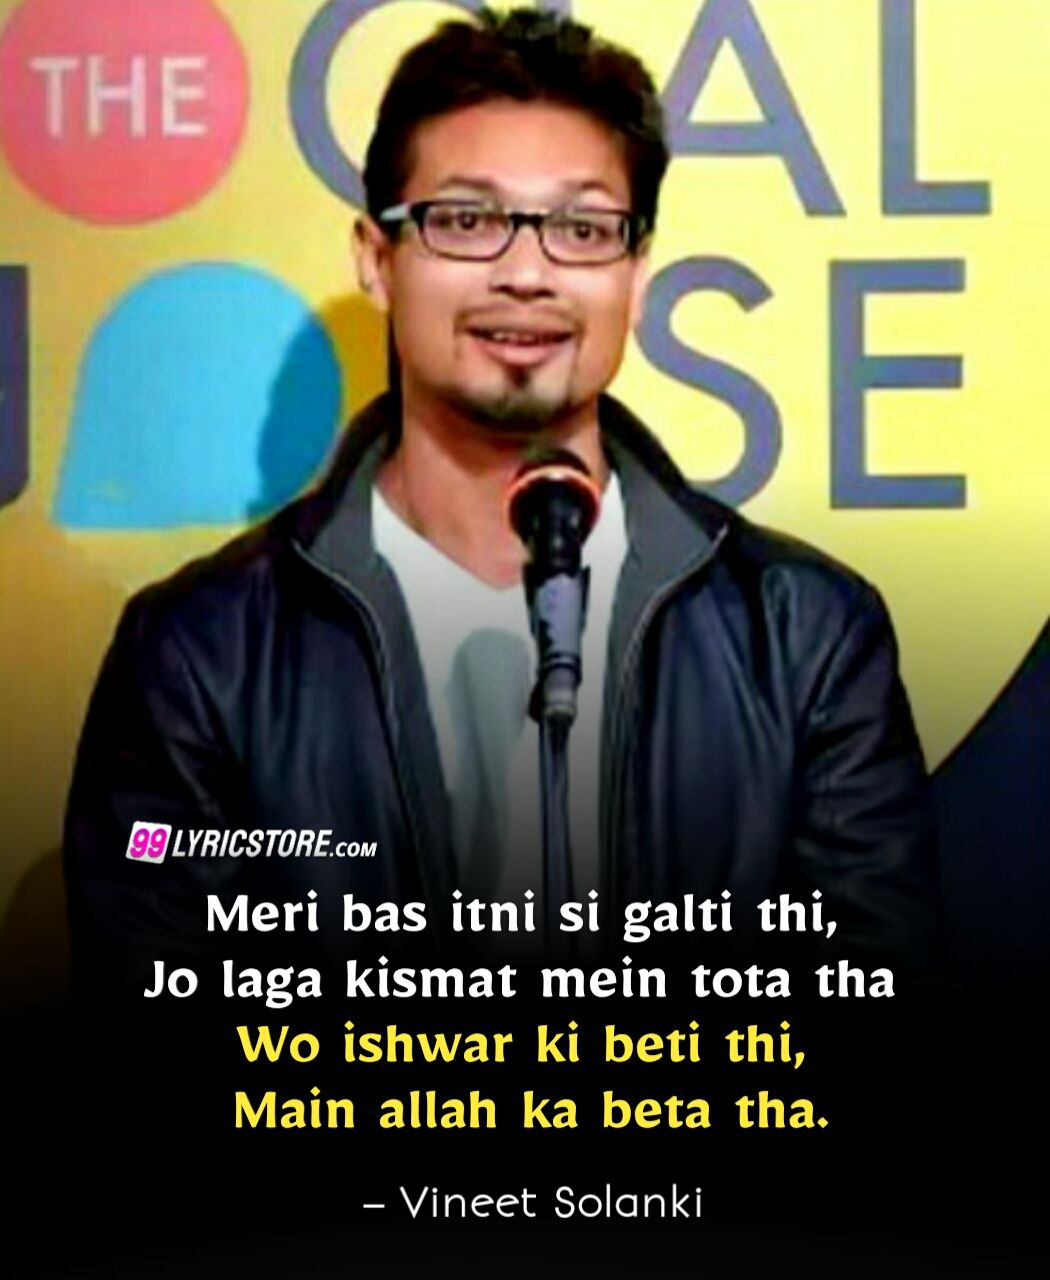 'Wo Ishwar Ki Beti, Main Allah Ka Beta' Poetry has written and performed by Vineet Solanki on The Social House's Plateform.